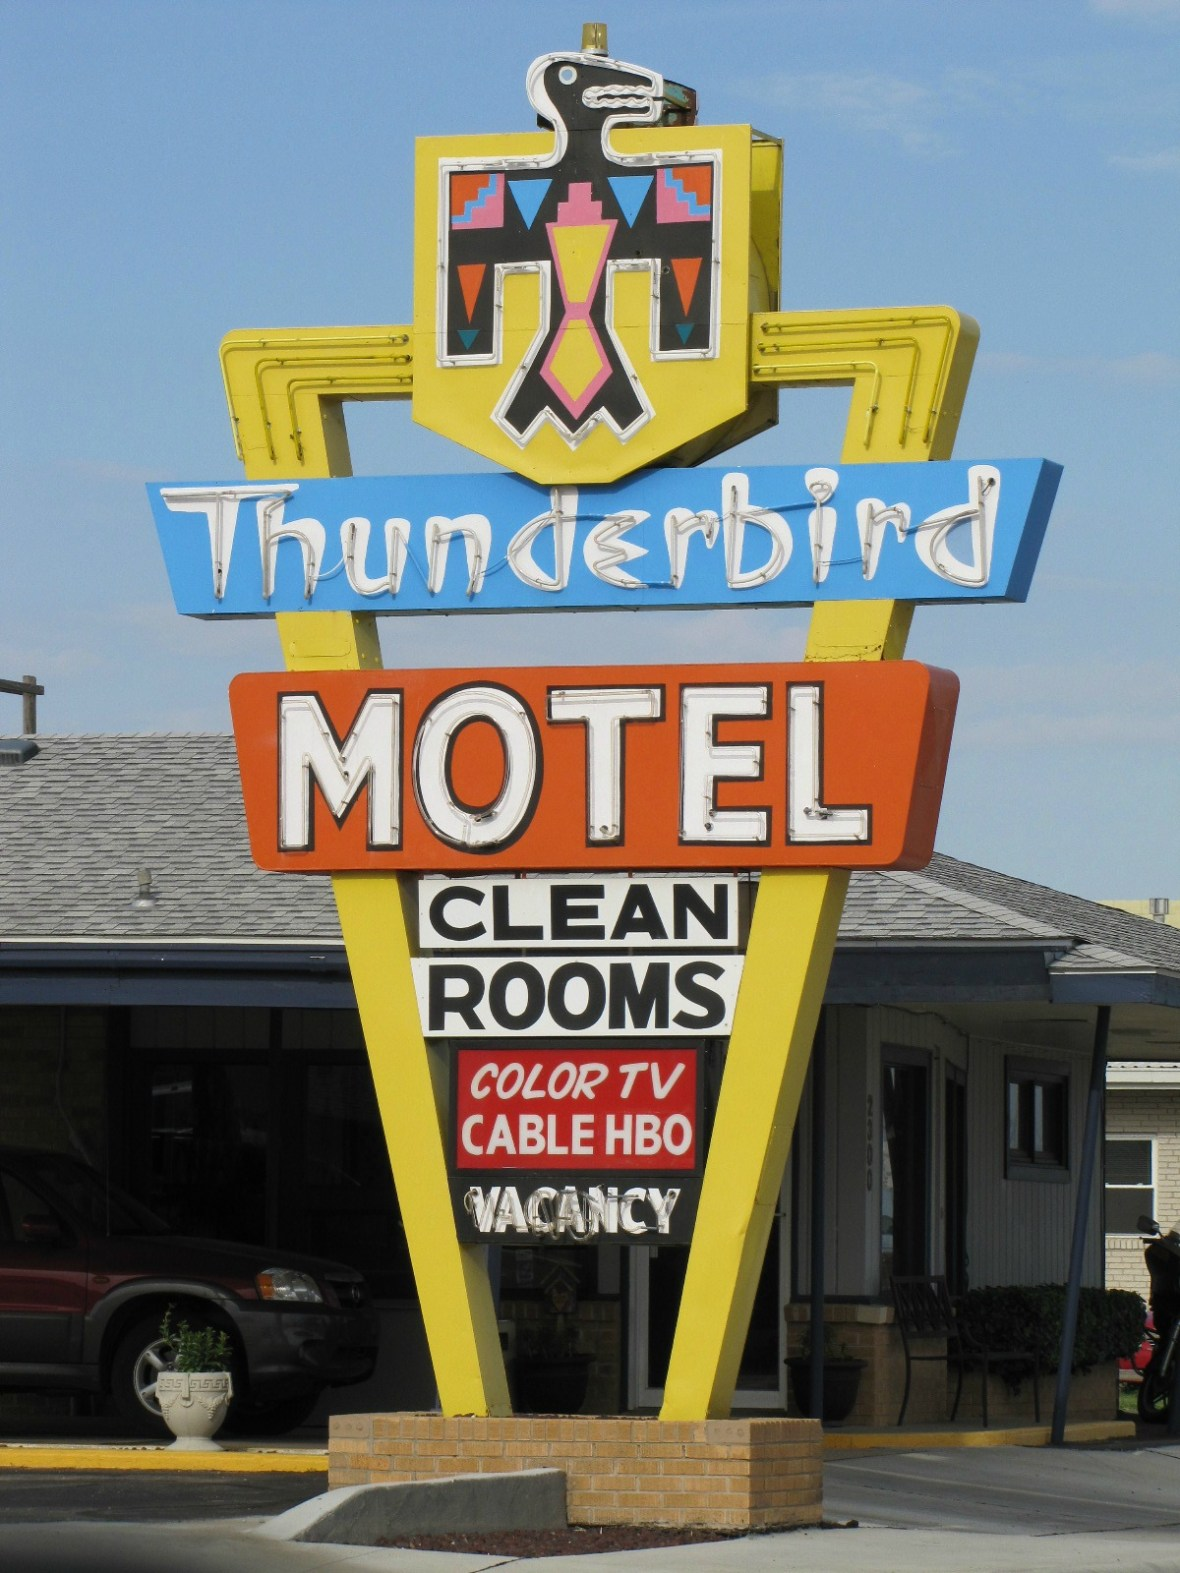 Thunderbird Motel - 2300 West Wyatt Earp Boulevard, Dodge City, Kansas U.S.A. - May 12, 2012